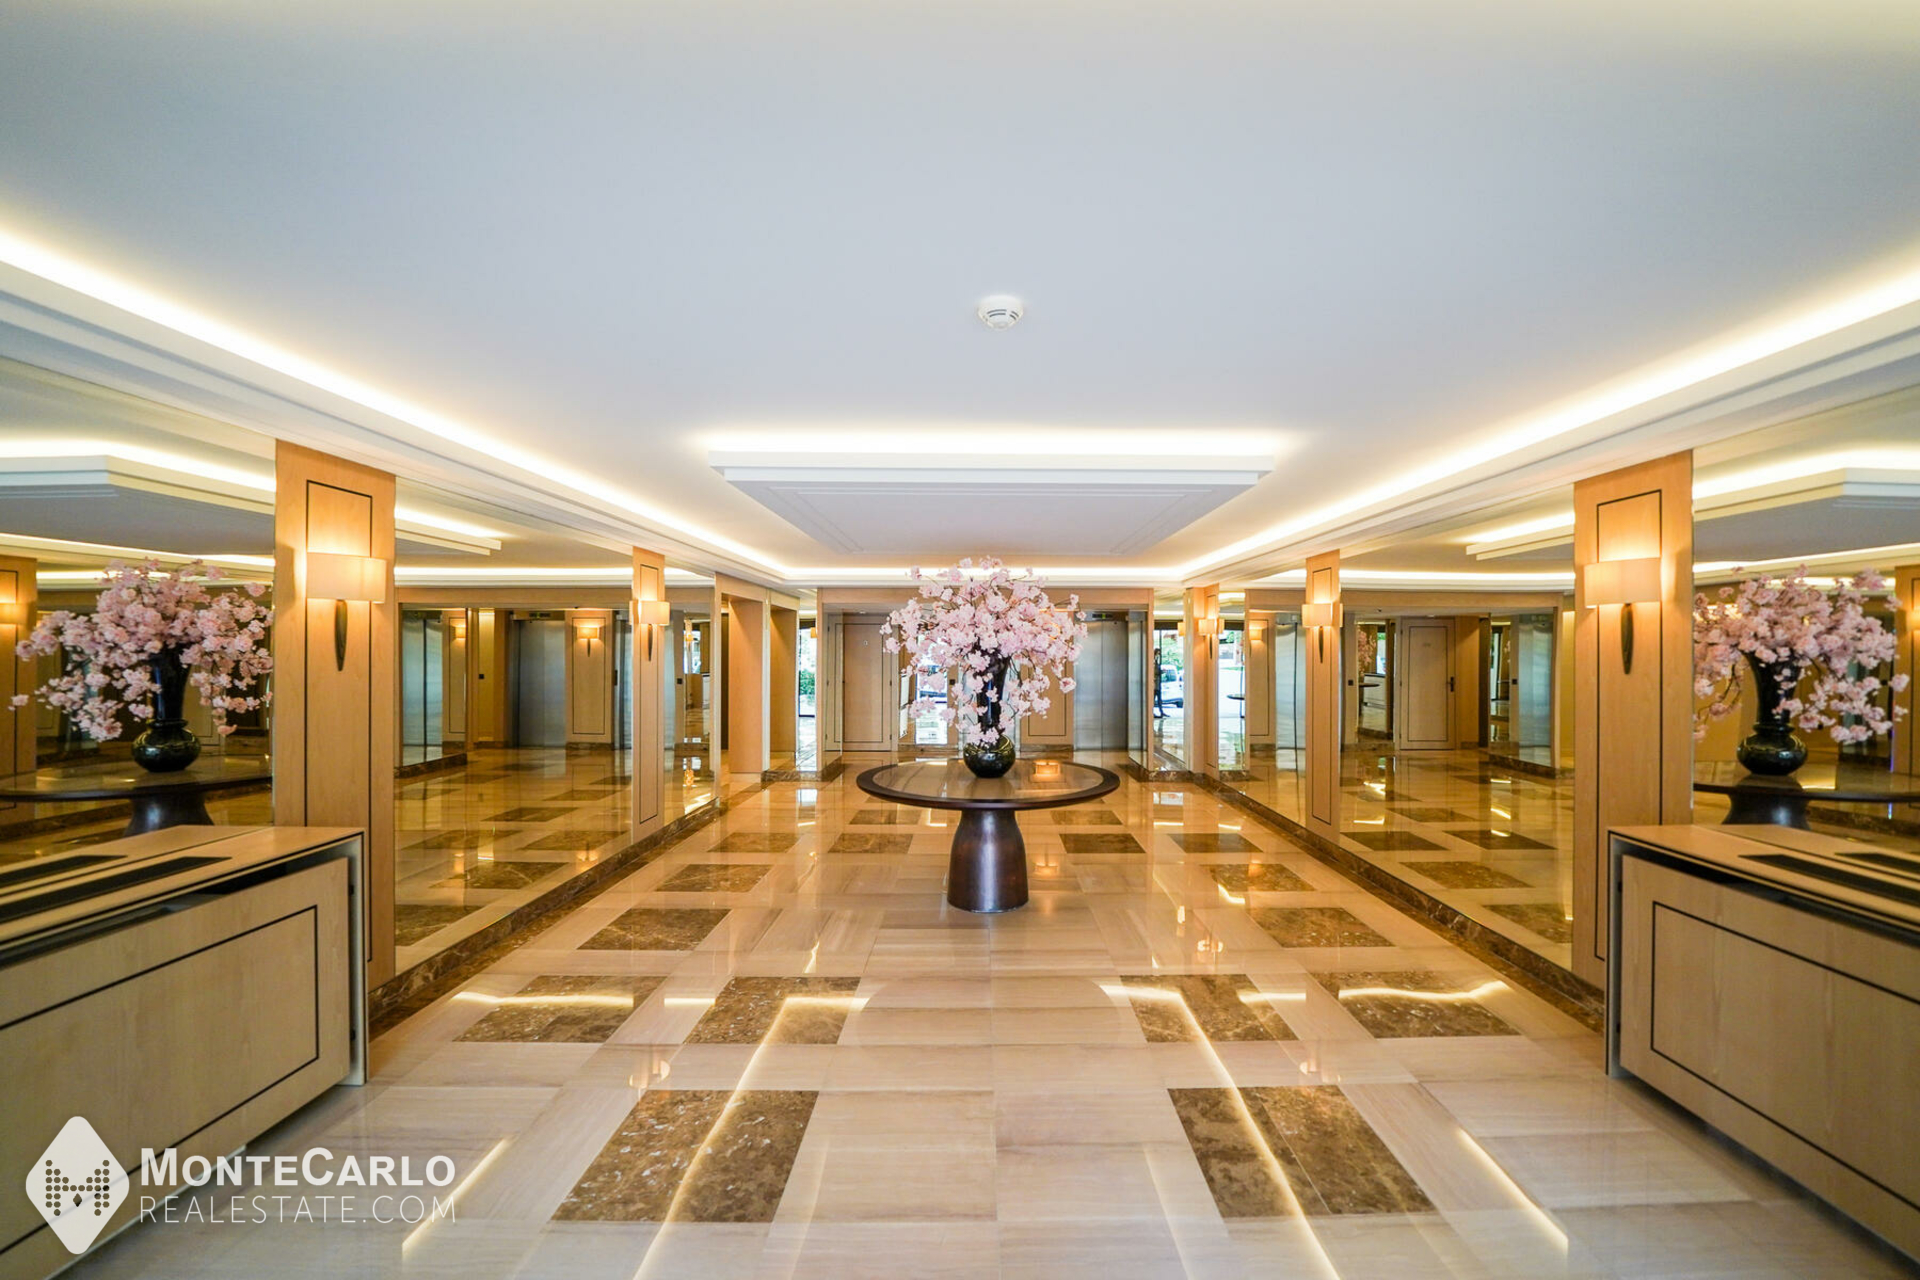 Rental George V - Office / +5 rooms : 37 625 €   Monte-Carlo Real Estate [HP-GV488]